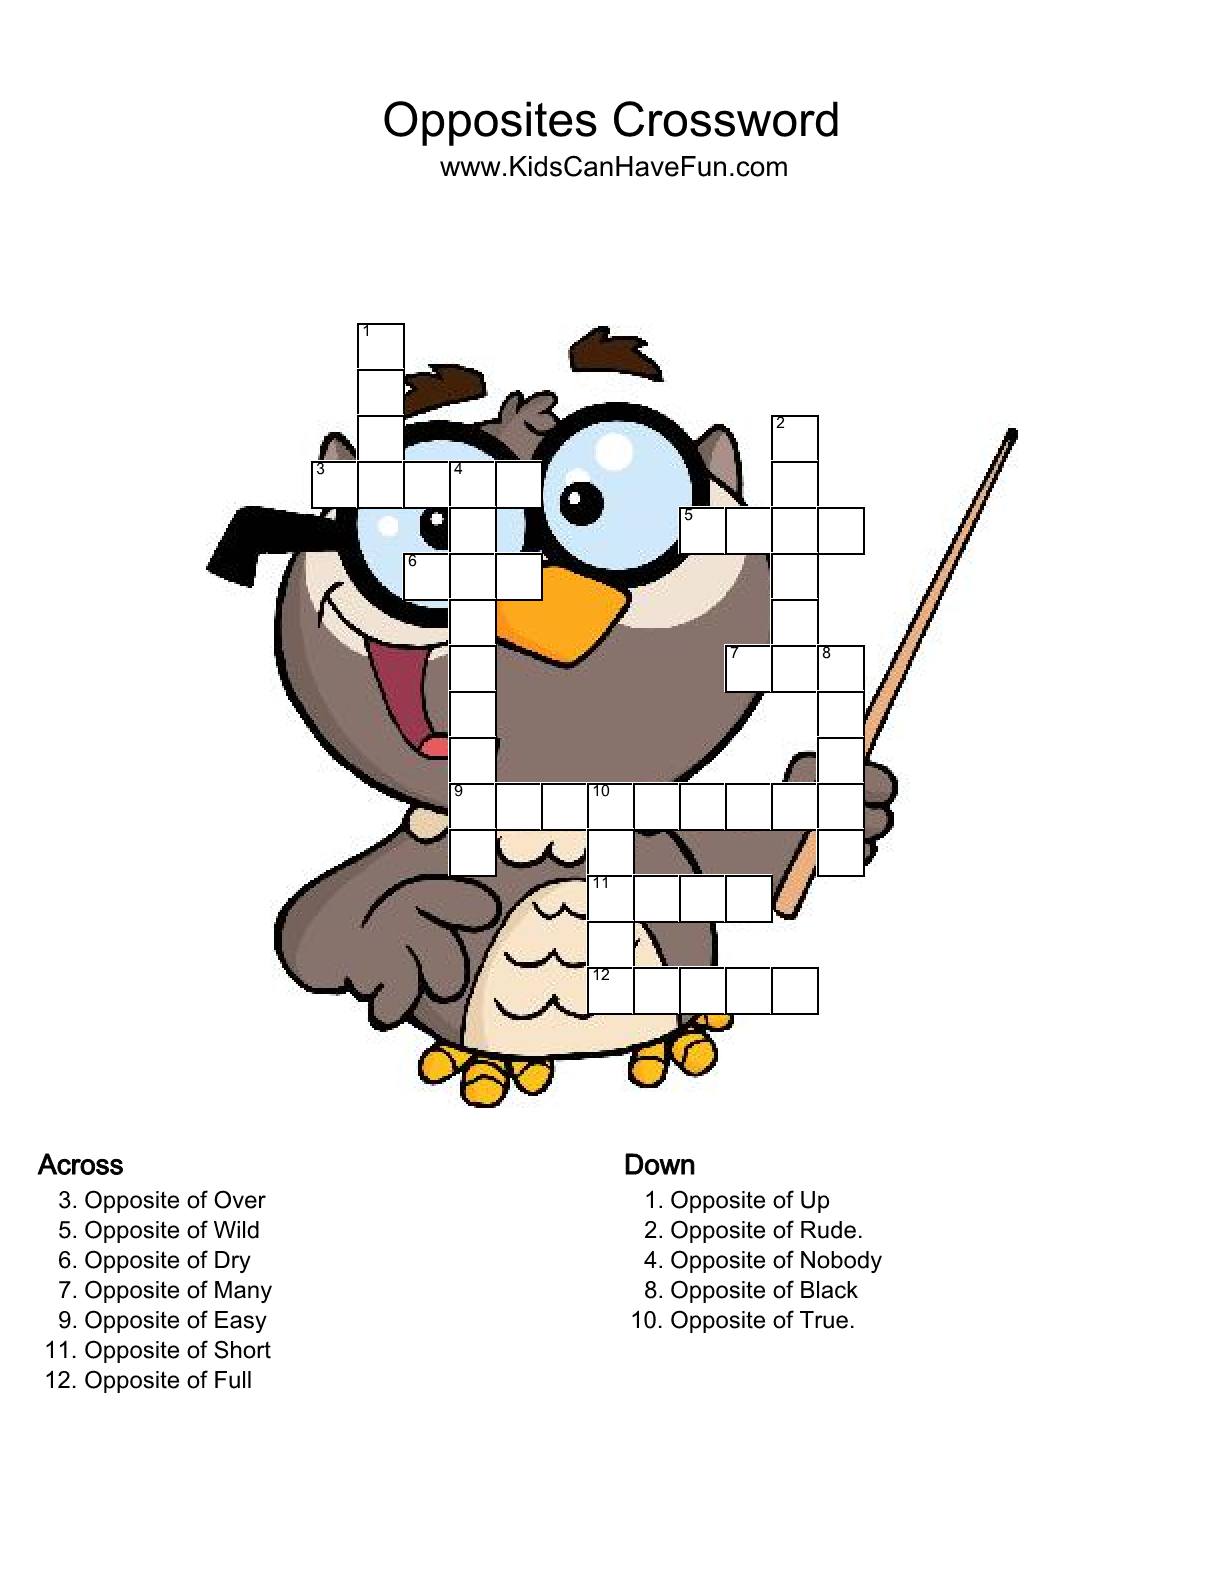 Game with shapes of different colors crossword - Fun Crossword Puzzles For Kids That Are Easy To Do And Help Make Learning Fun Kids Can Choose From Educational Holiday And Online Crosswords